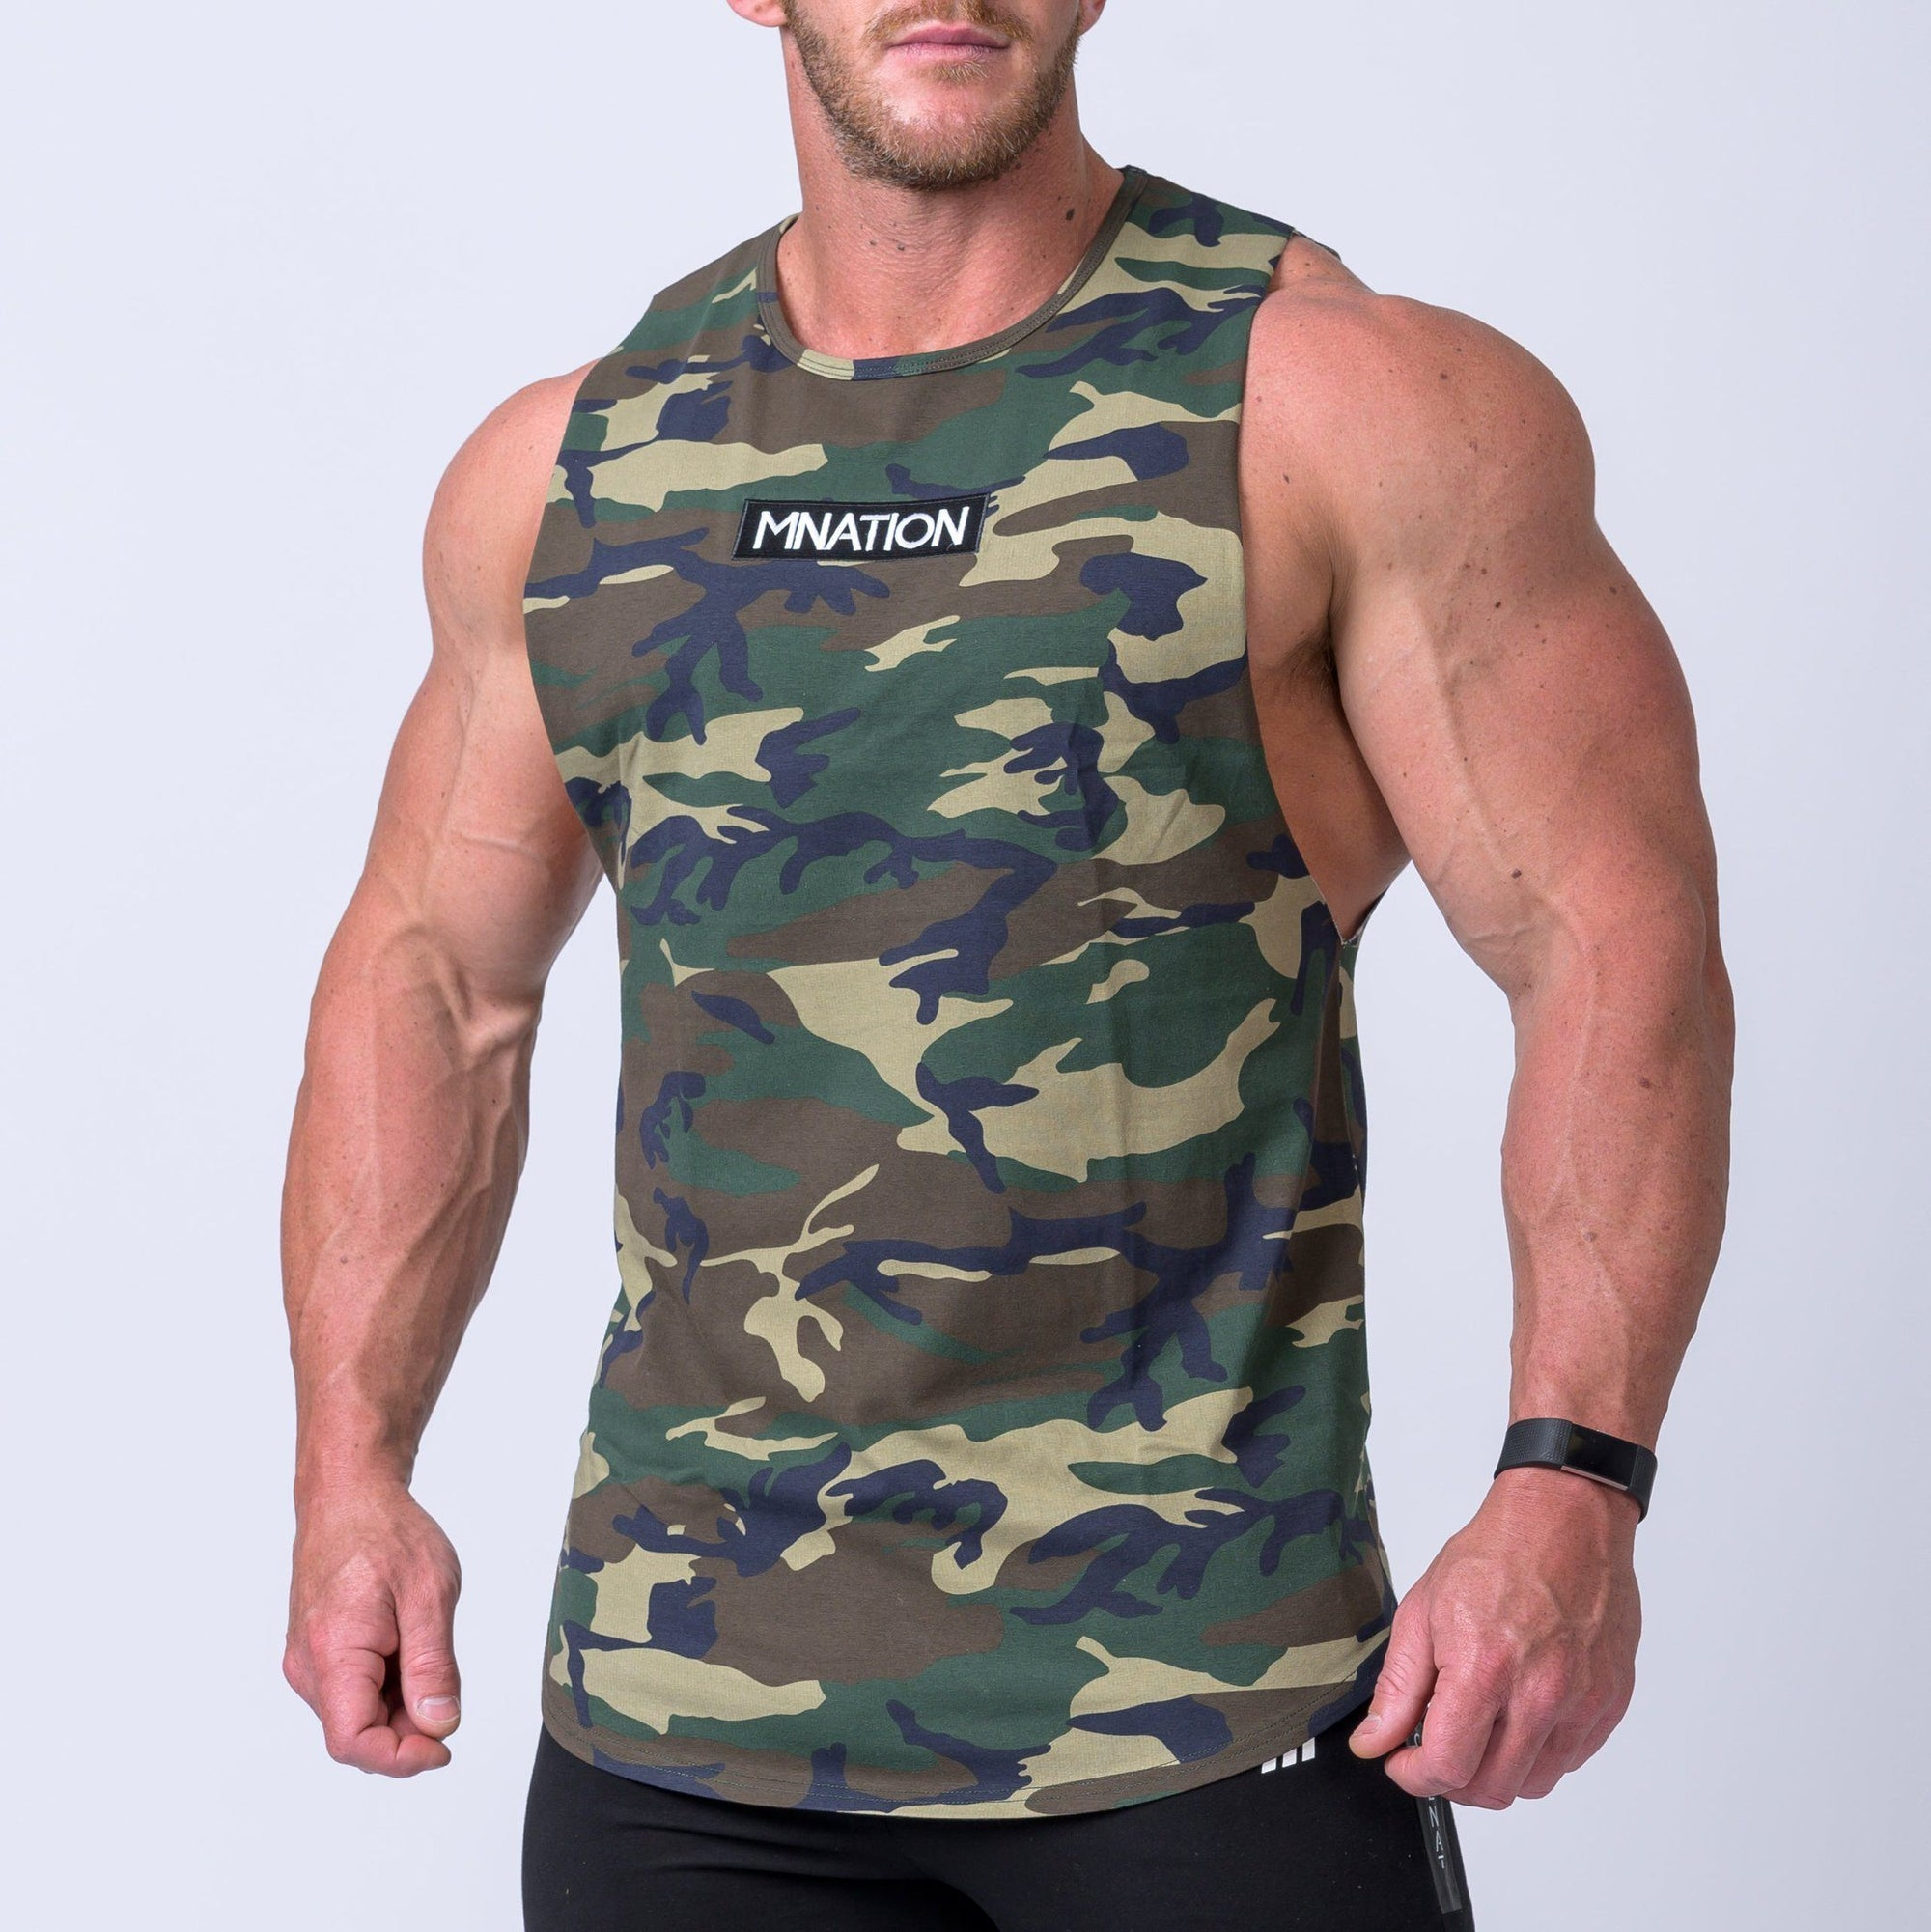 Muscle Nation Embroidery Tank - Camo